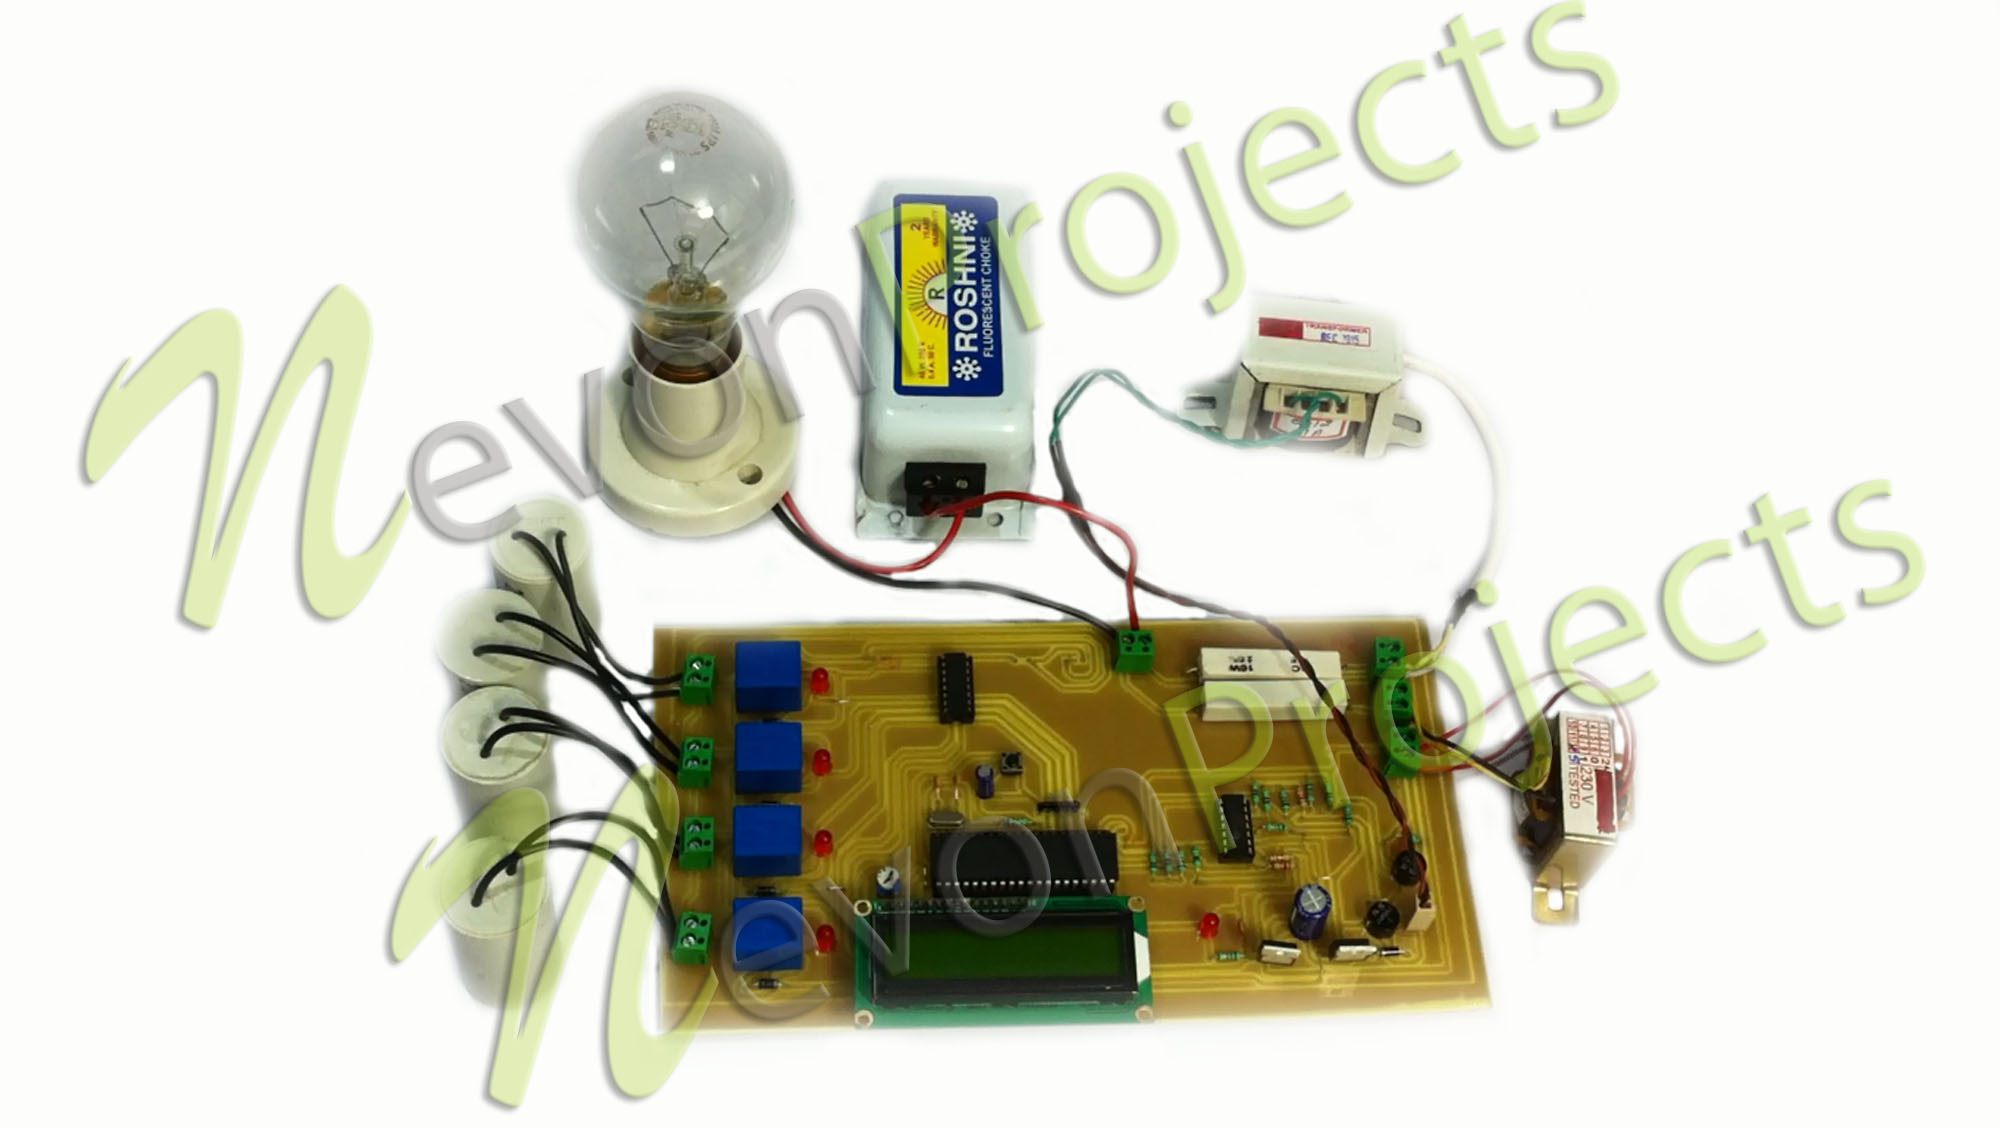 Commercial Power Saver Project Circuit Today Electronics Mini Projects Diagram Ask Home